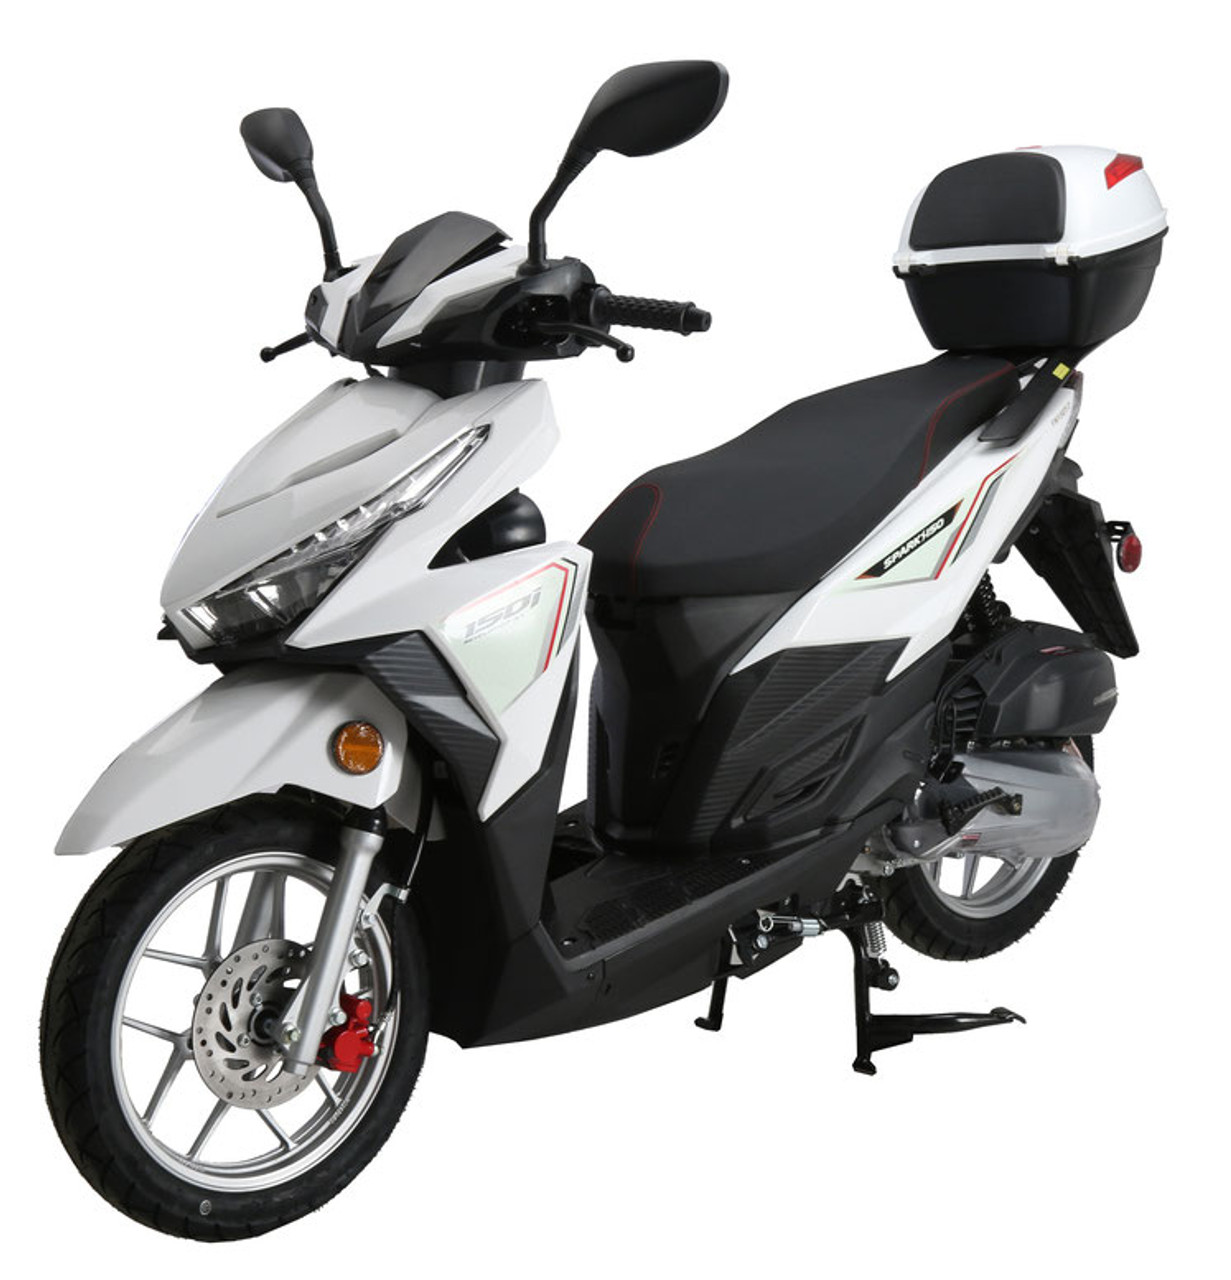 Vitacci SPARK 150cc Scooter, GY6 4-Stroke, Air Cooled